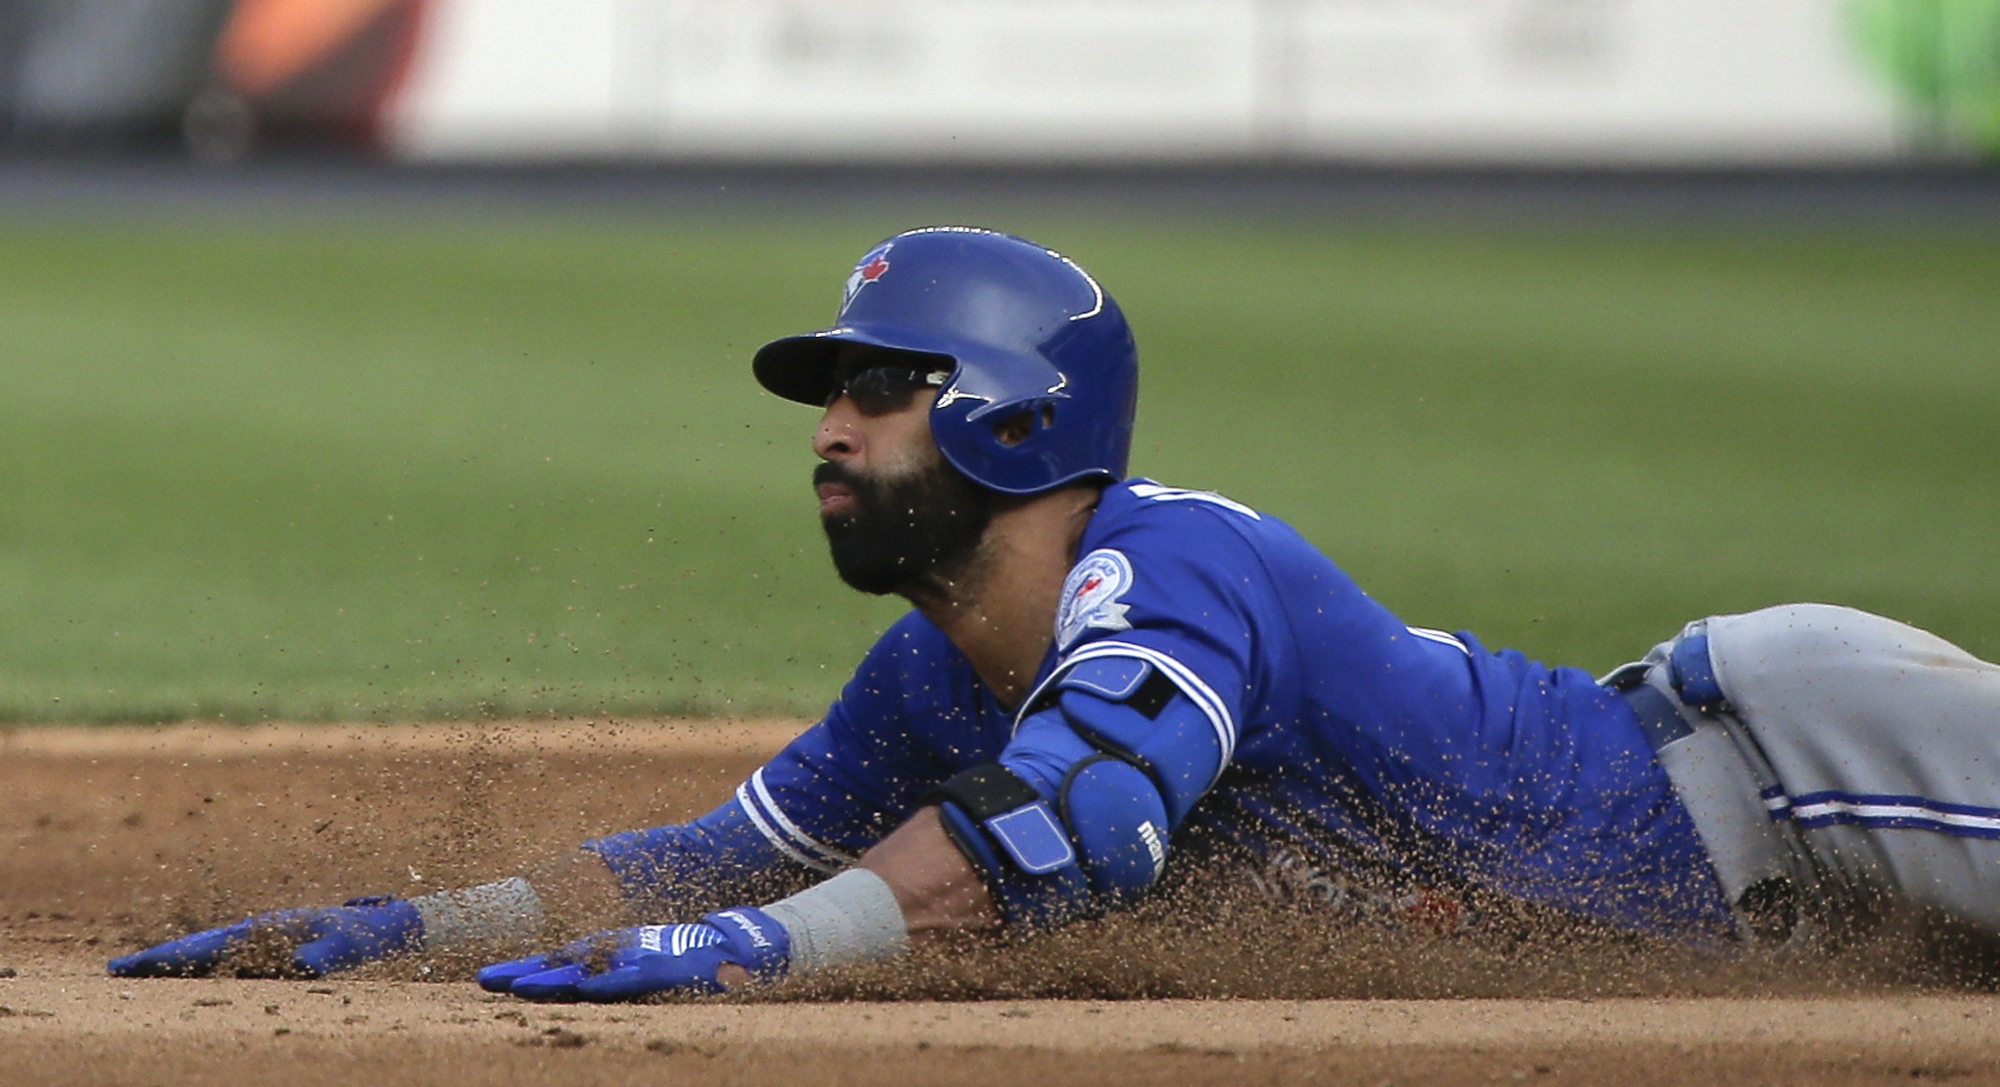 Toronto Blue Jays' Jose Bautista stretches a single into a double as he slides safely into second base during the eighth inning against the New York Yankees in a baseball game Thursday, May 26, 2016, in New York. The Blue Jays won 3-1. (AP Photo/Julie Jac